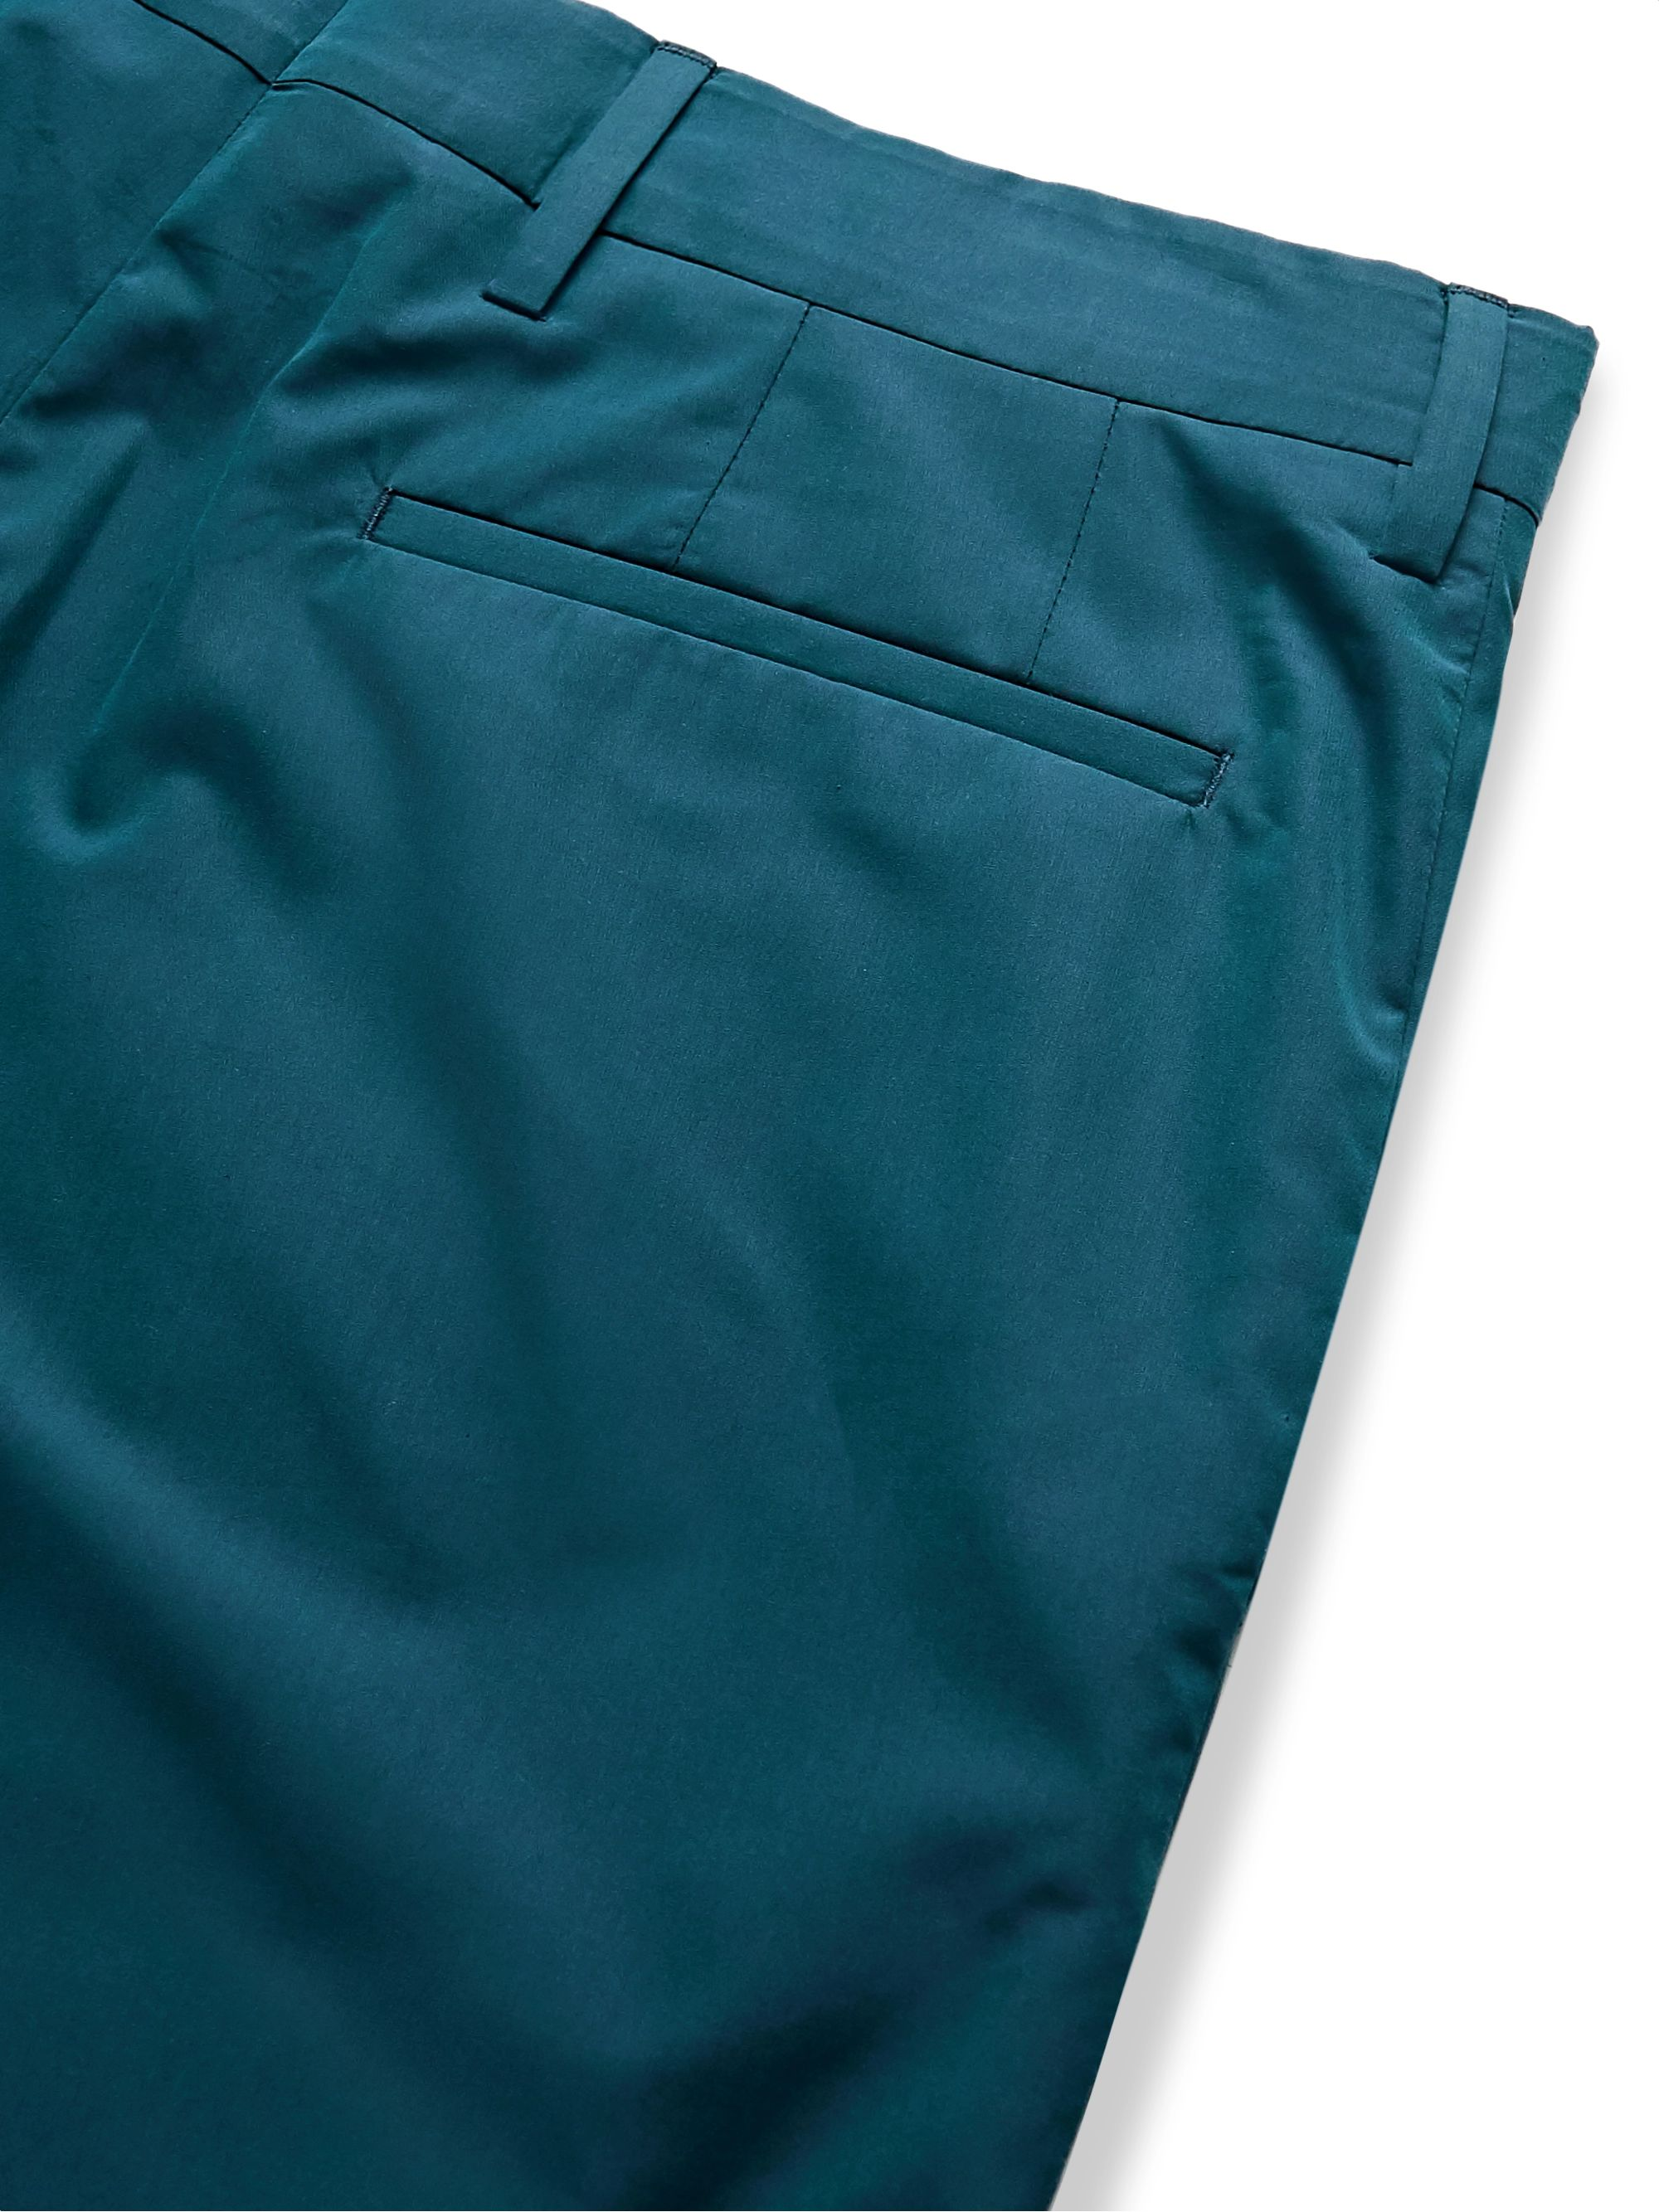 Teal Cotton Shorts | Paul Smith